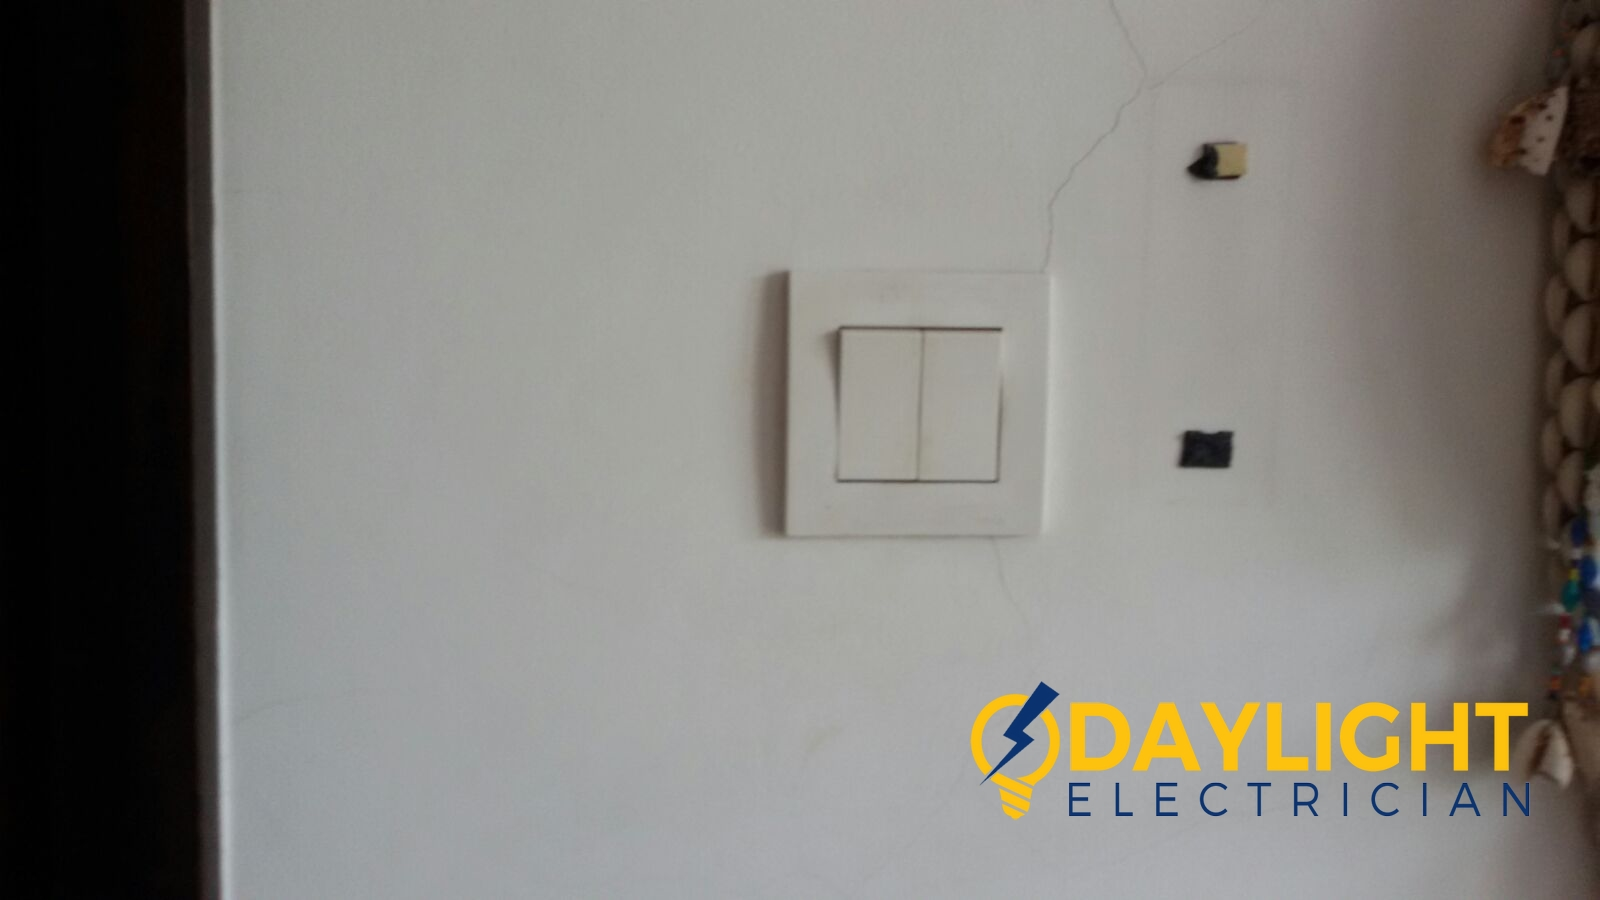 Change-light-switches-light-bulbs-electrician-singapore-landed-cashew-road-5_wm